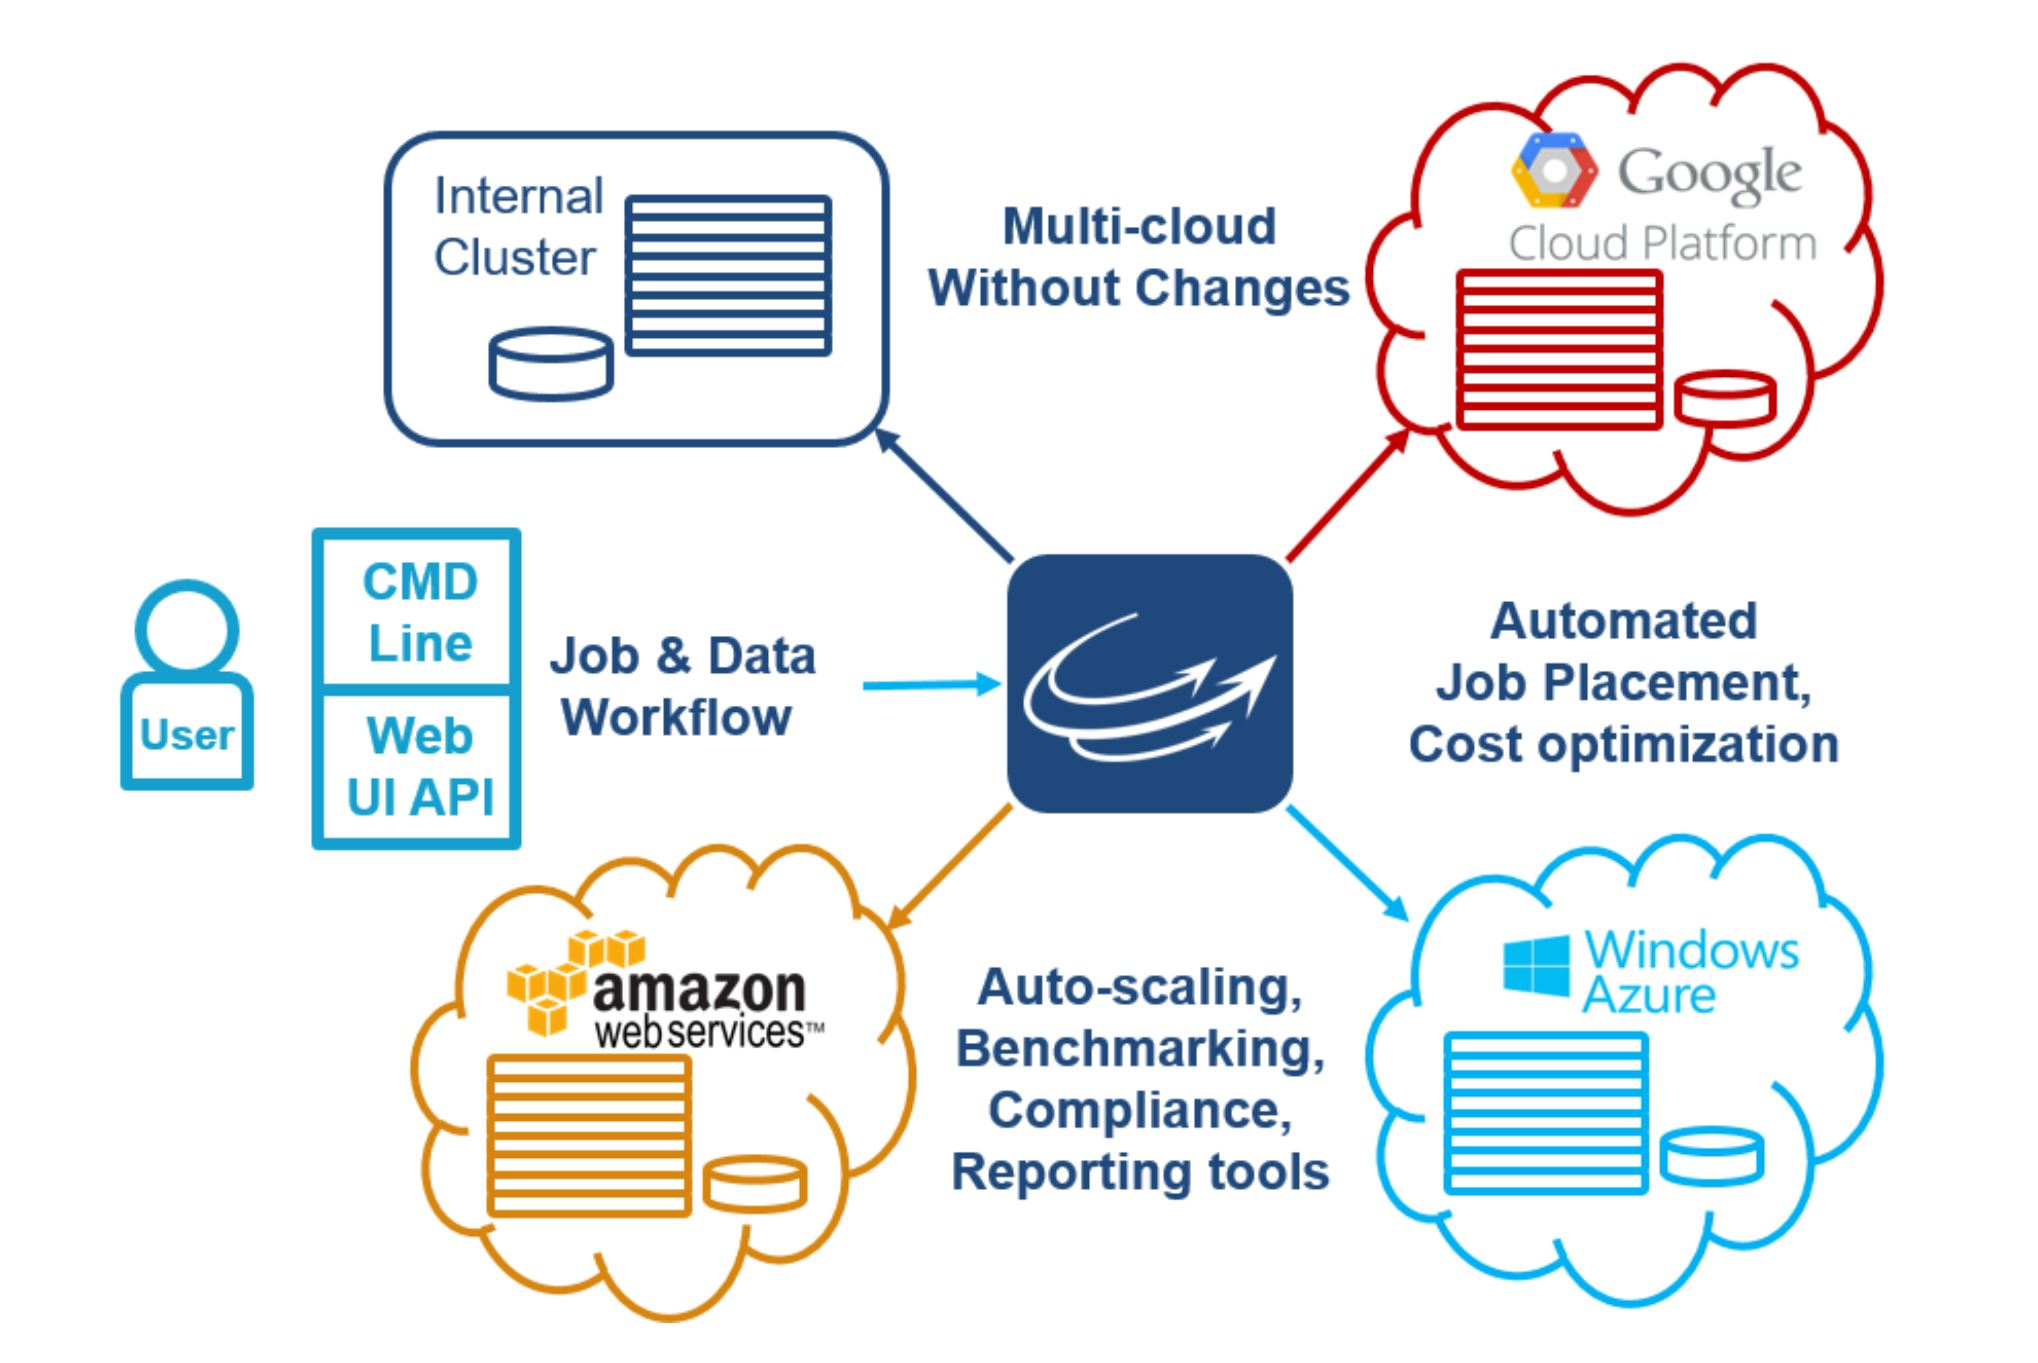 Microsoft azure cloud computing platform services - In Addition To Microsoft Azure It Also Works With Other Public Cloud Providers Like Amazon Web Services And Google Cloud Platform